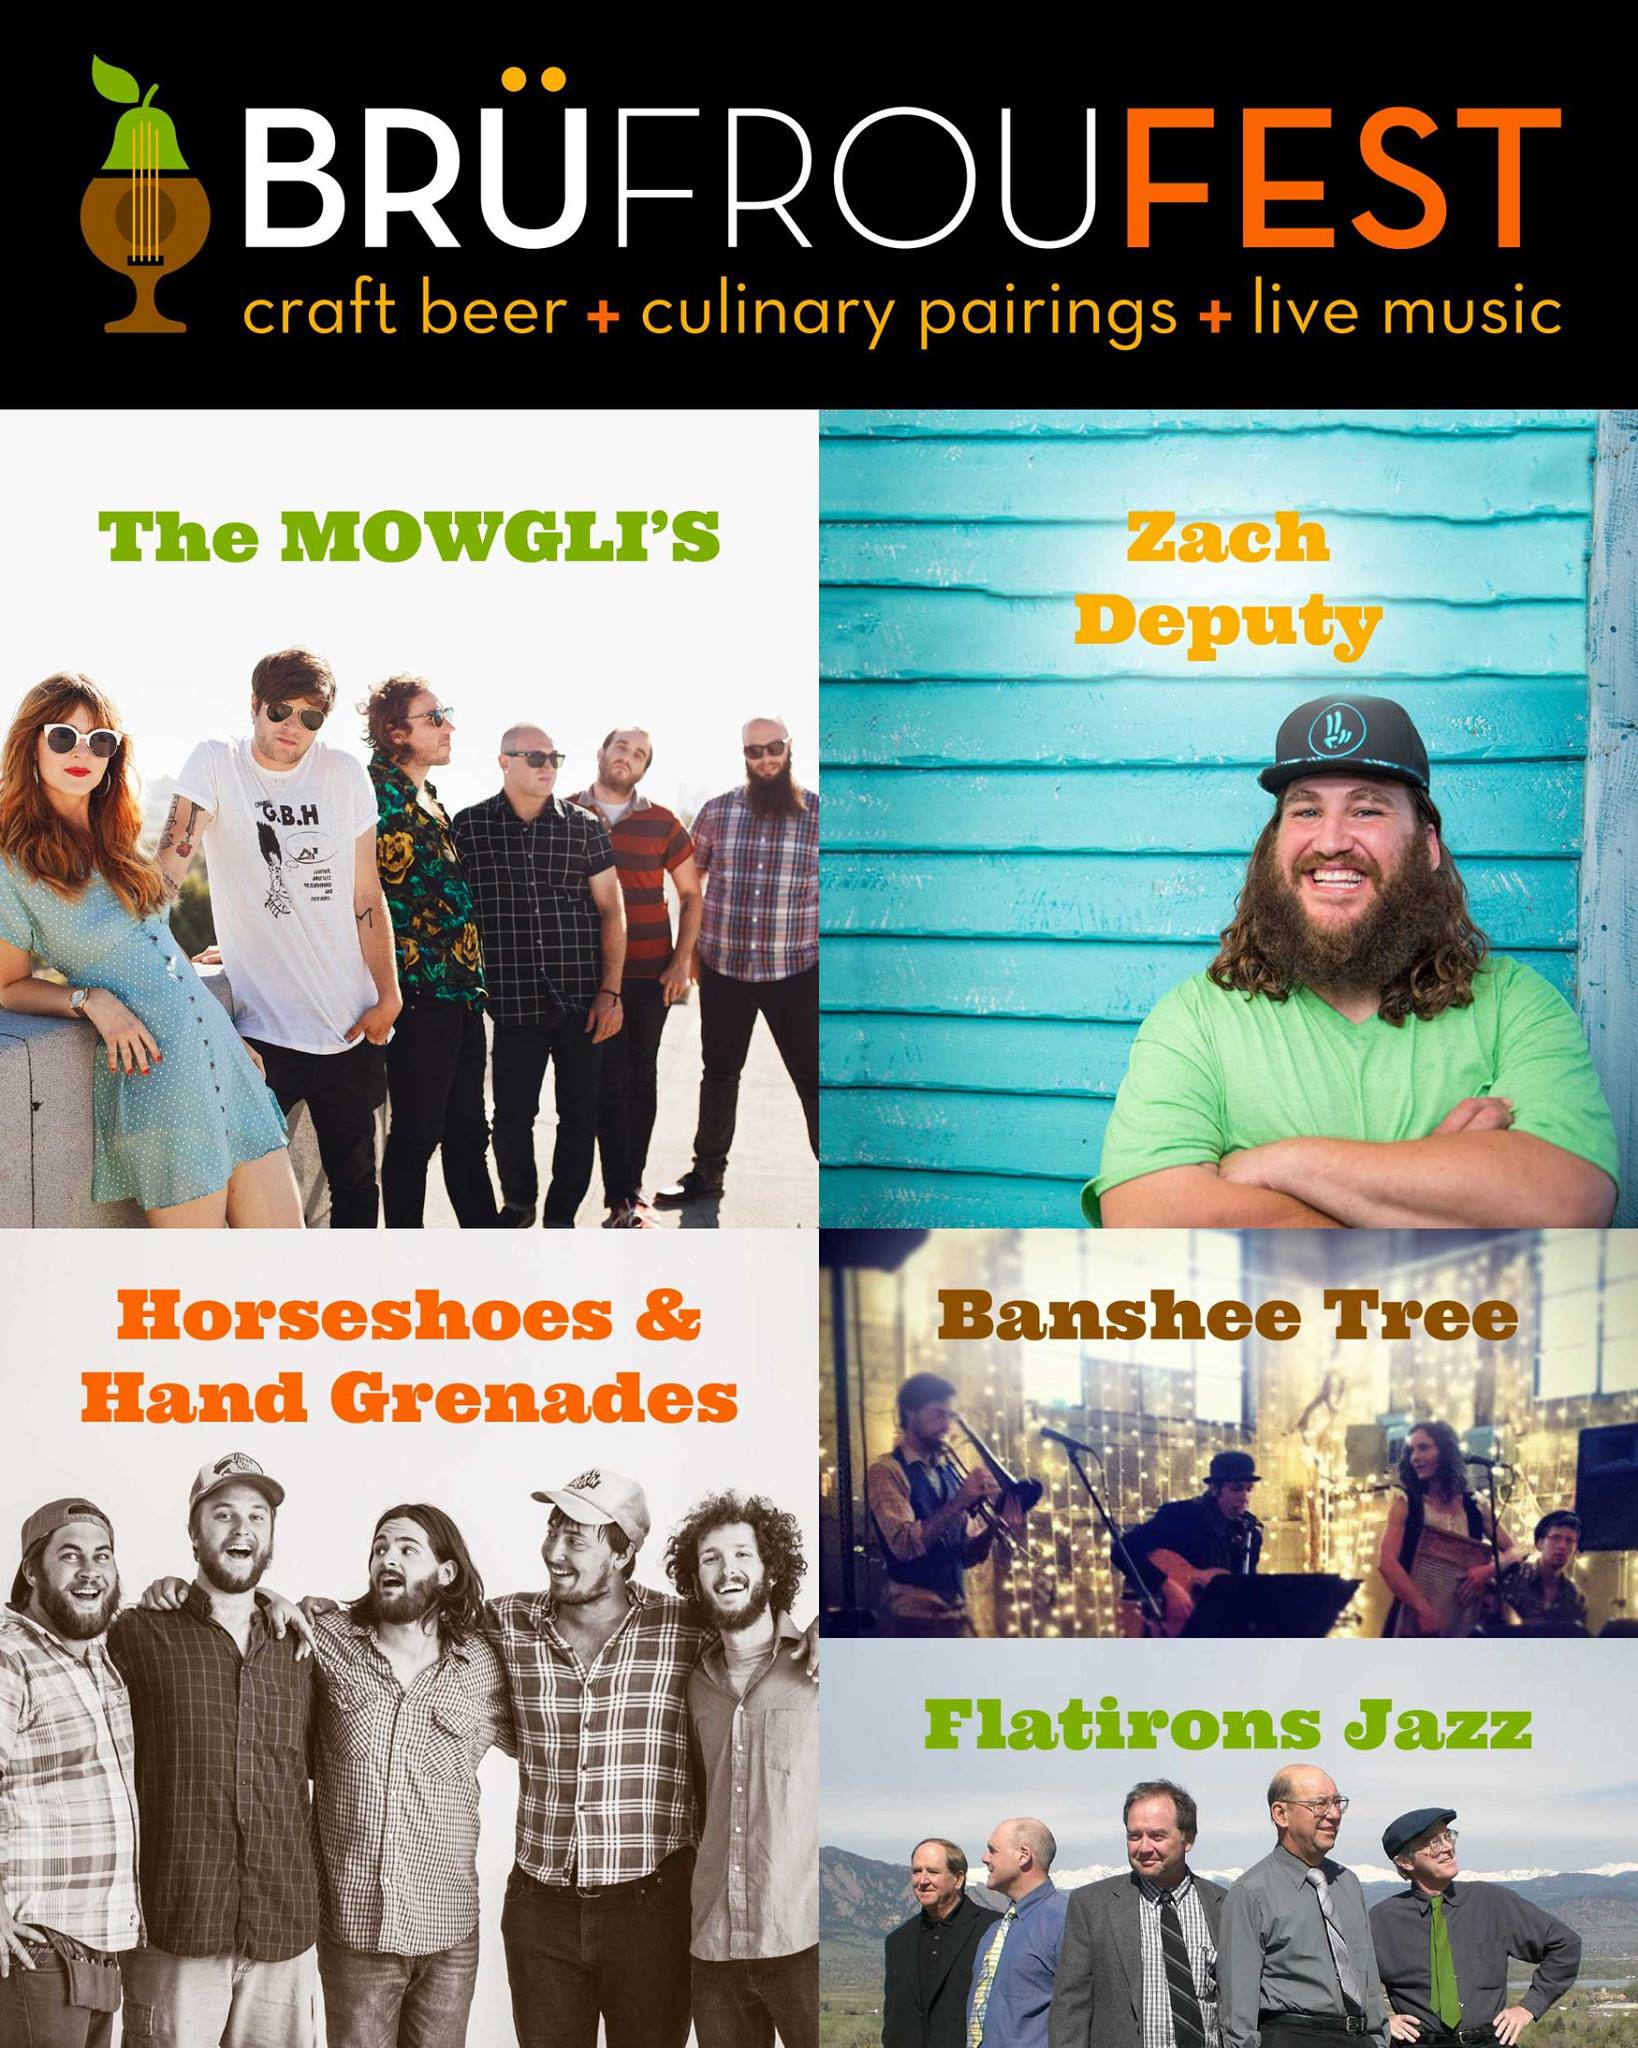 The BrüFrouFEST 2017 live music lineup is complete. Featuring national touring artists from coast-to-coast along with some great local favorites, it's going to be an amazing day of music, food & craft beer! www.BruFrou.com/music  GA Tickets start at $40 which include 8 Craft Beer Tasters paired w/ 8 One-bite Dishes + 5 hours of live music & DJ sets! www.BruFrou.com/tickets